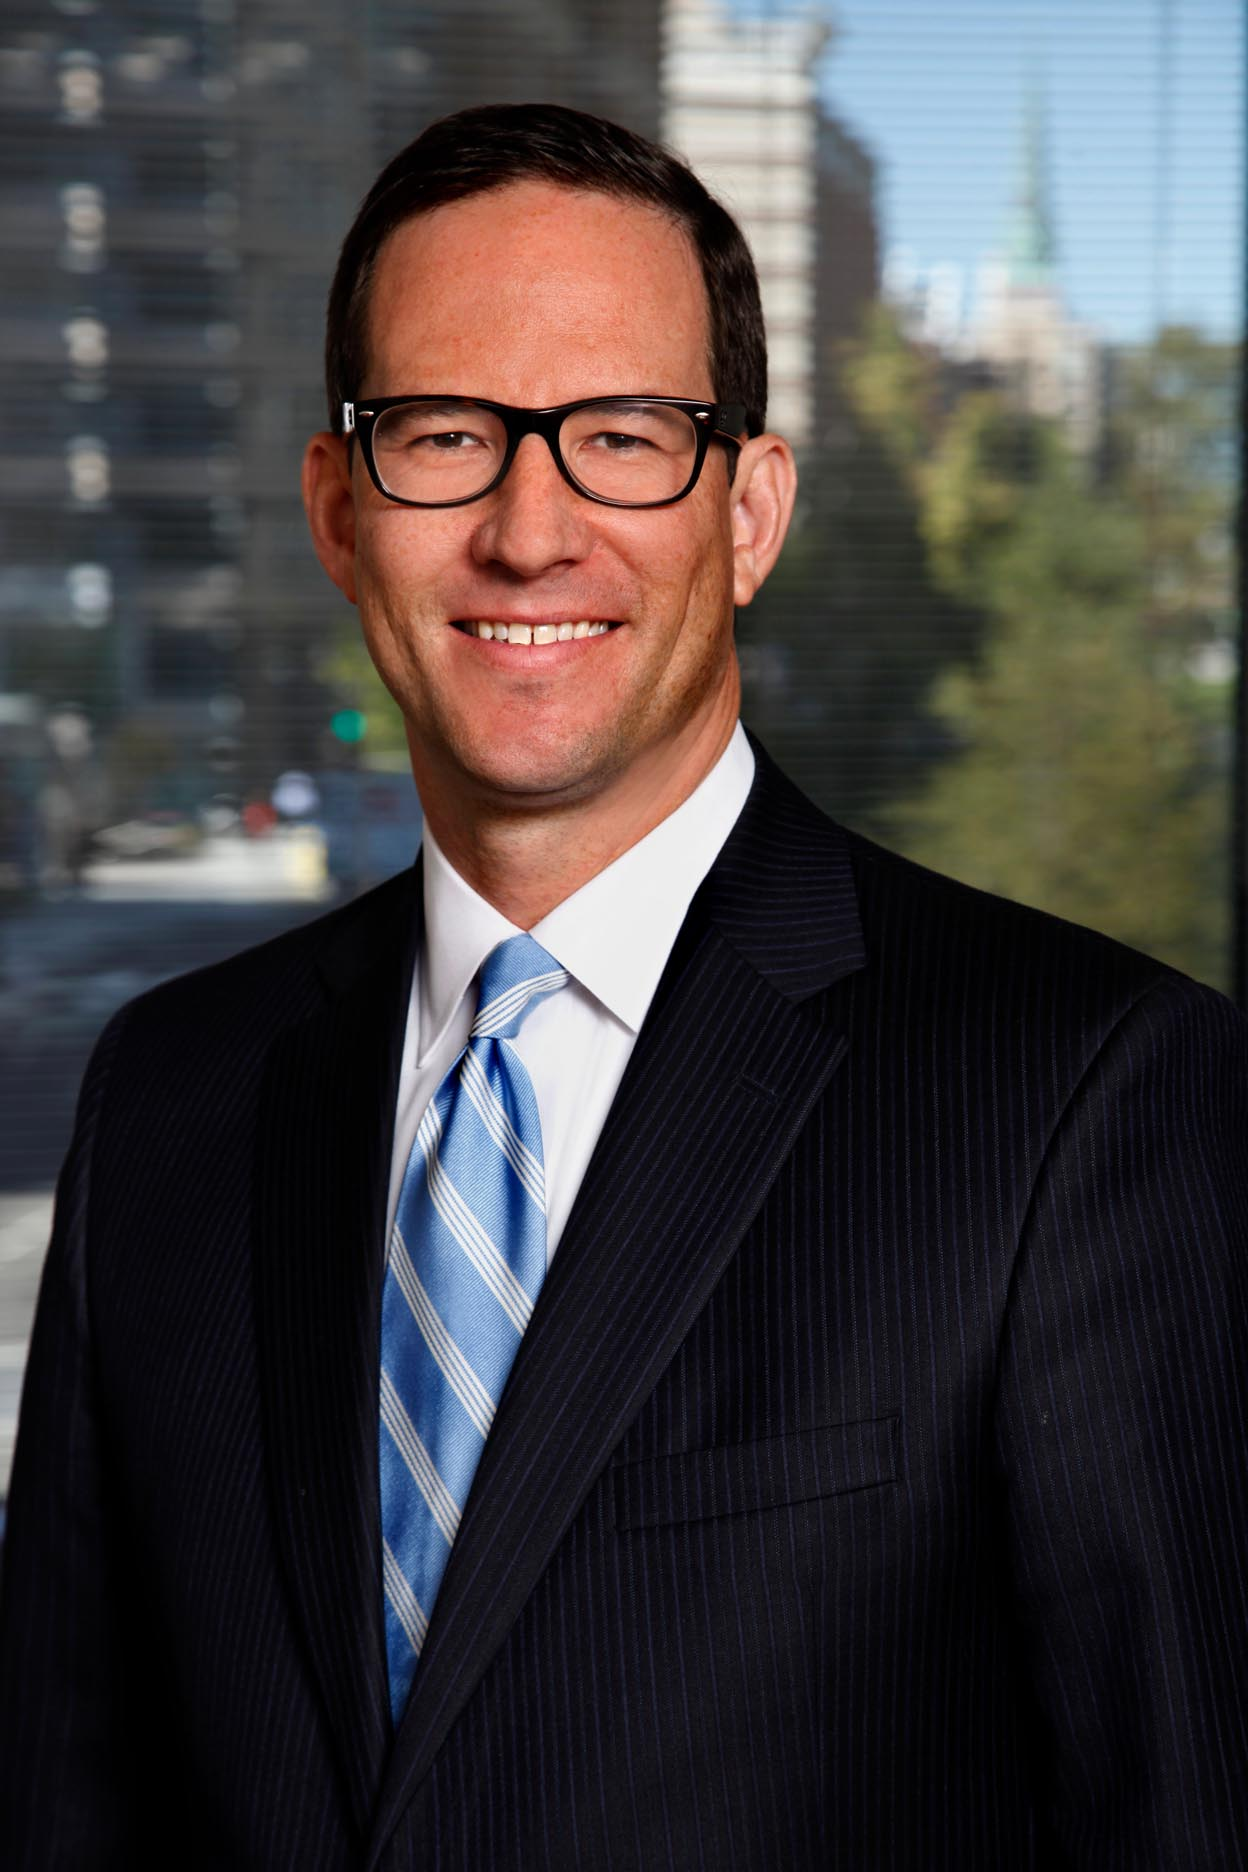 Invokana lawyer David Haynes